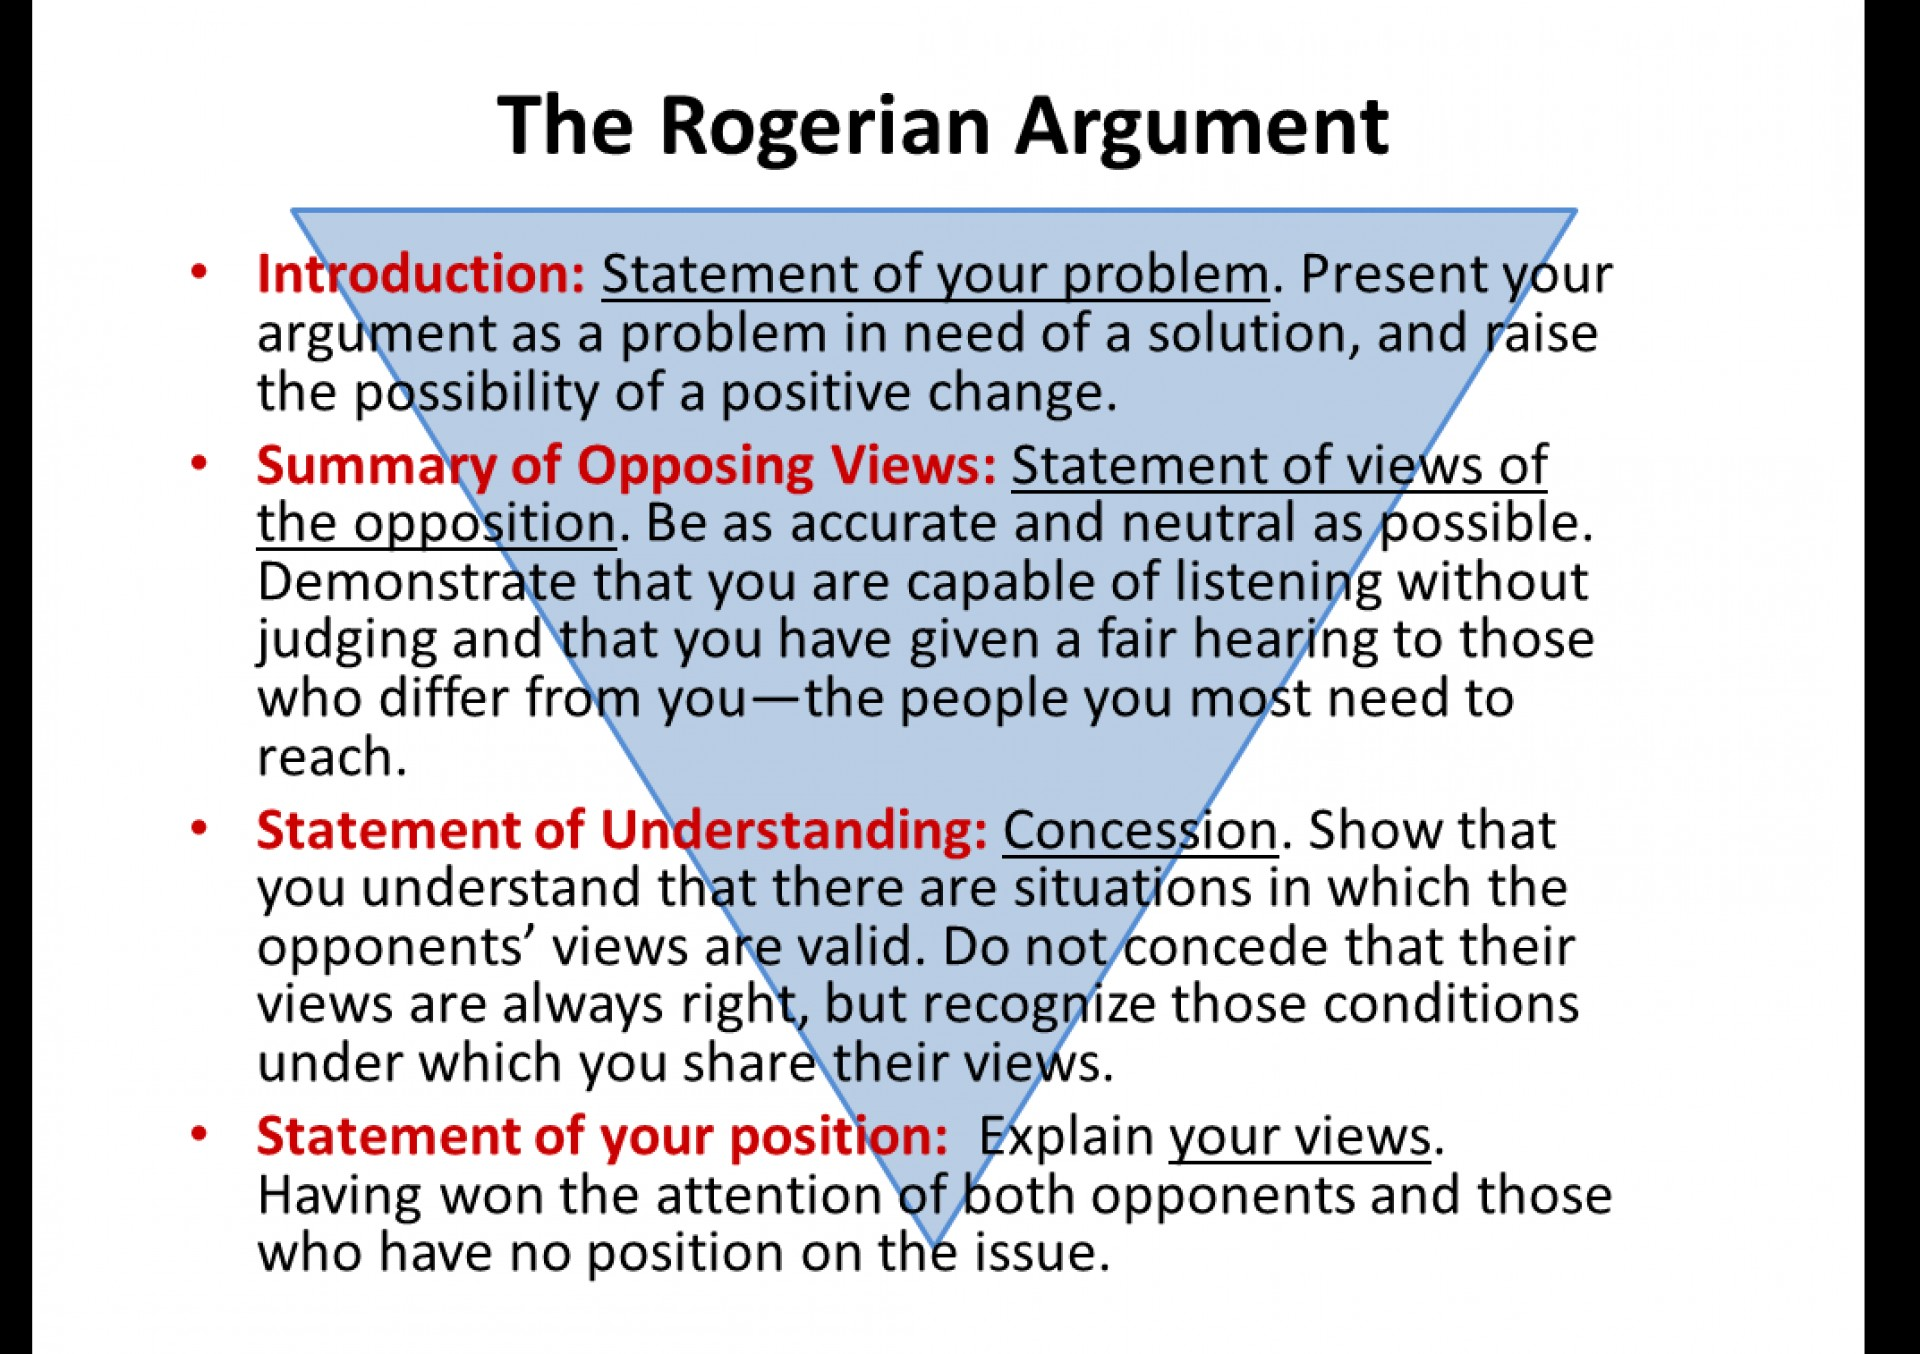 002 Rogerian Argument Essay Roger1 Fascinating Example Topics Death Penalty On Abortion 1920